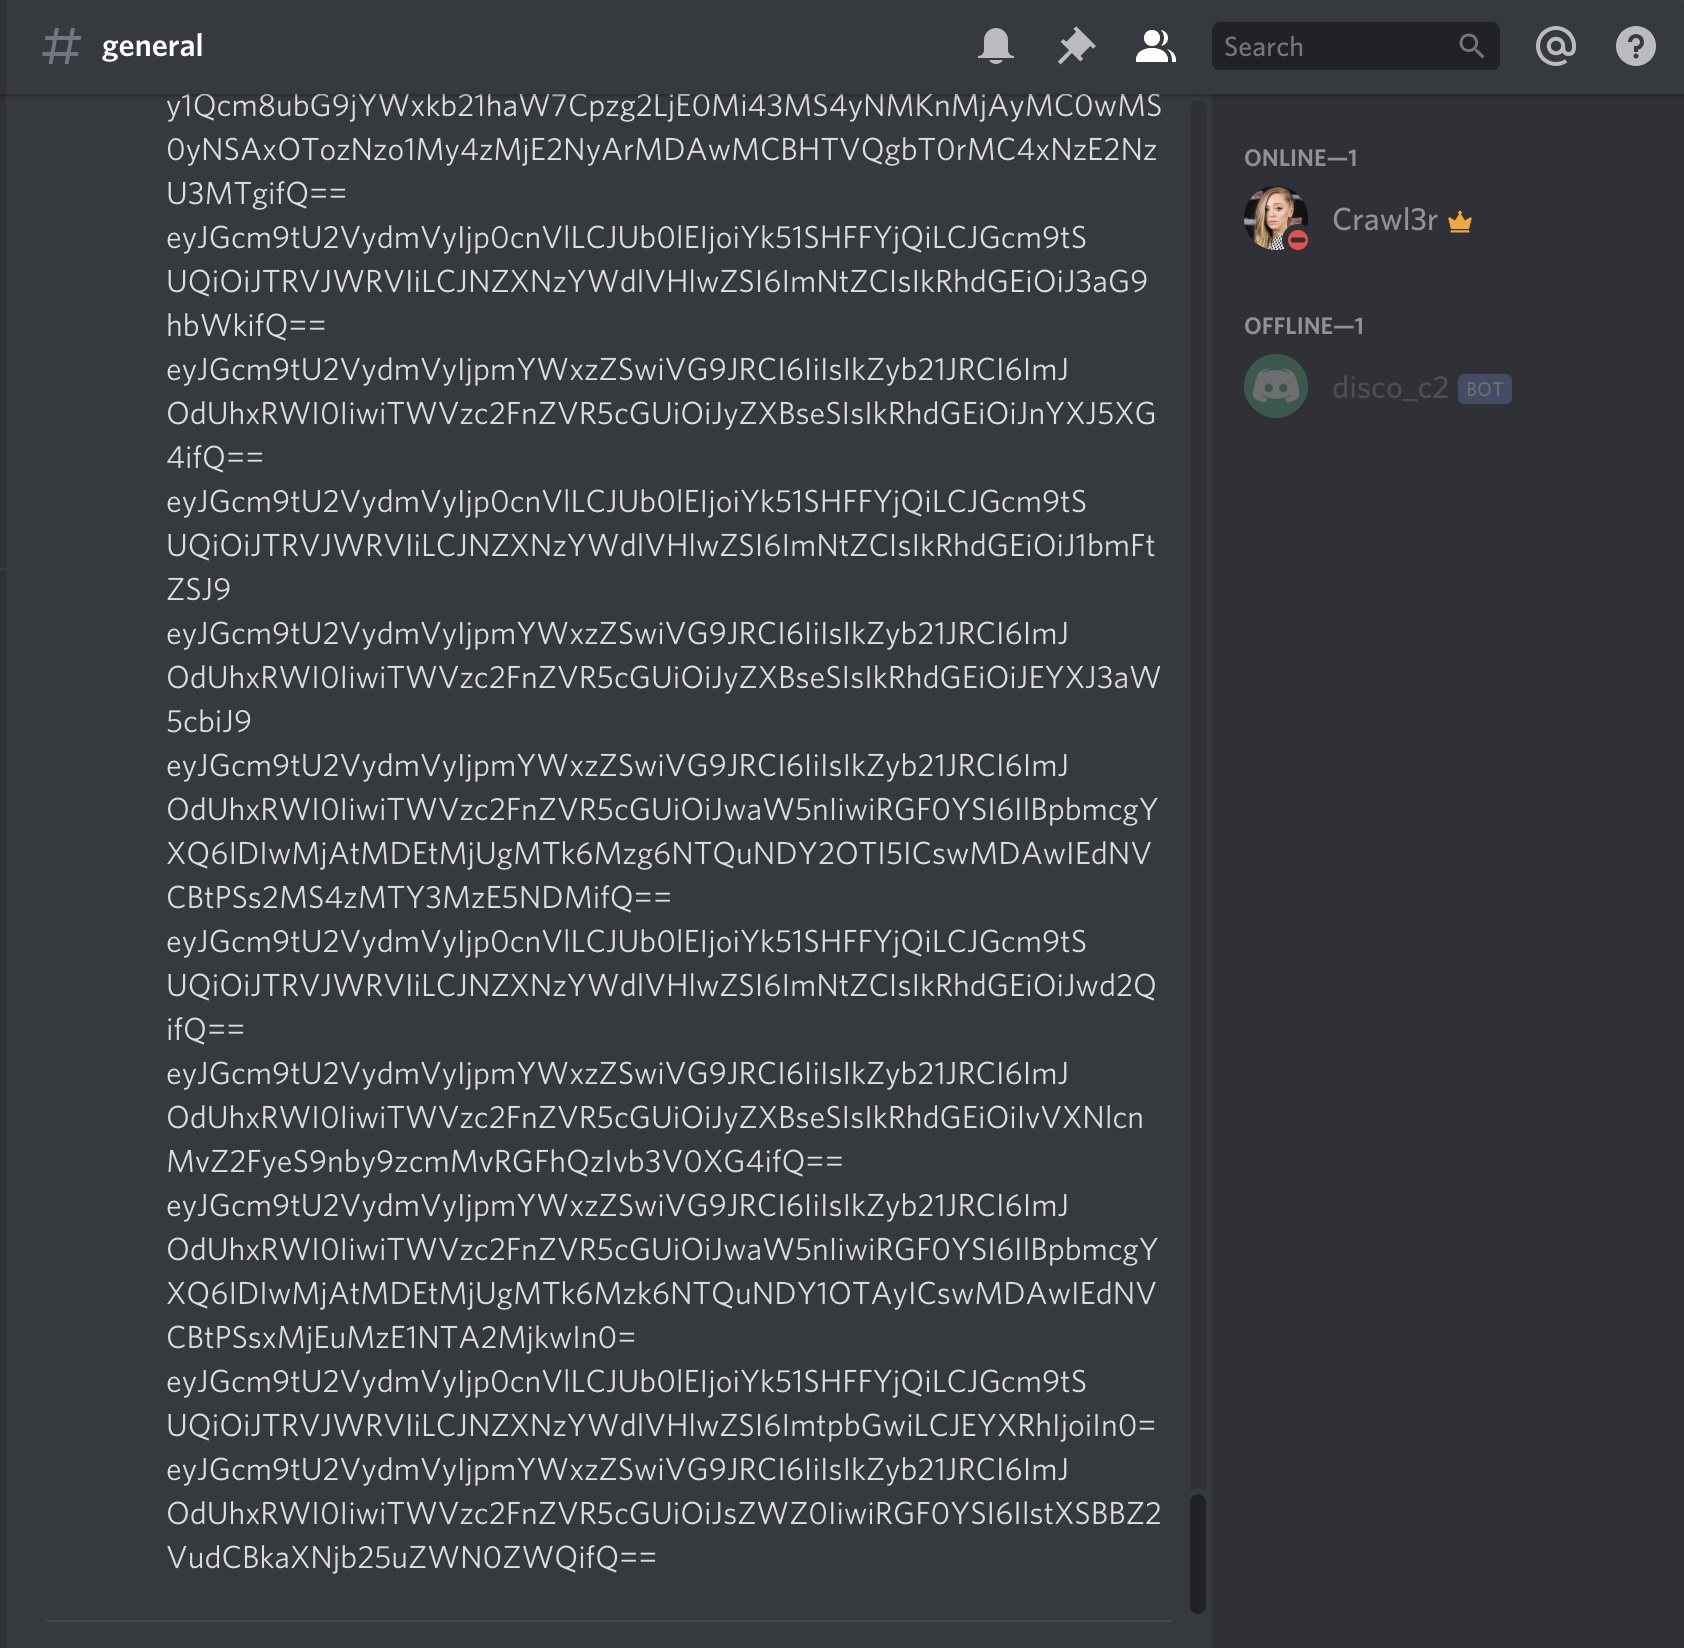 Discord communication